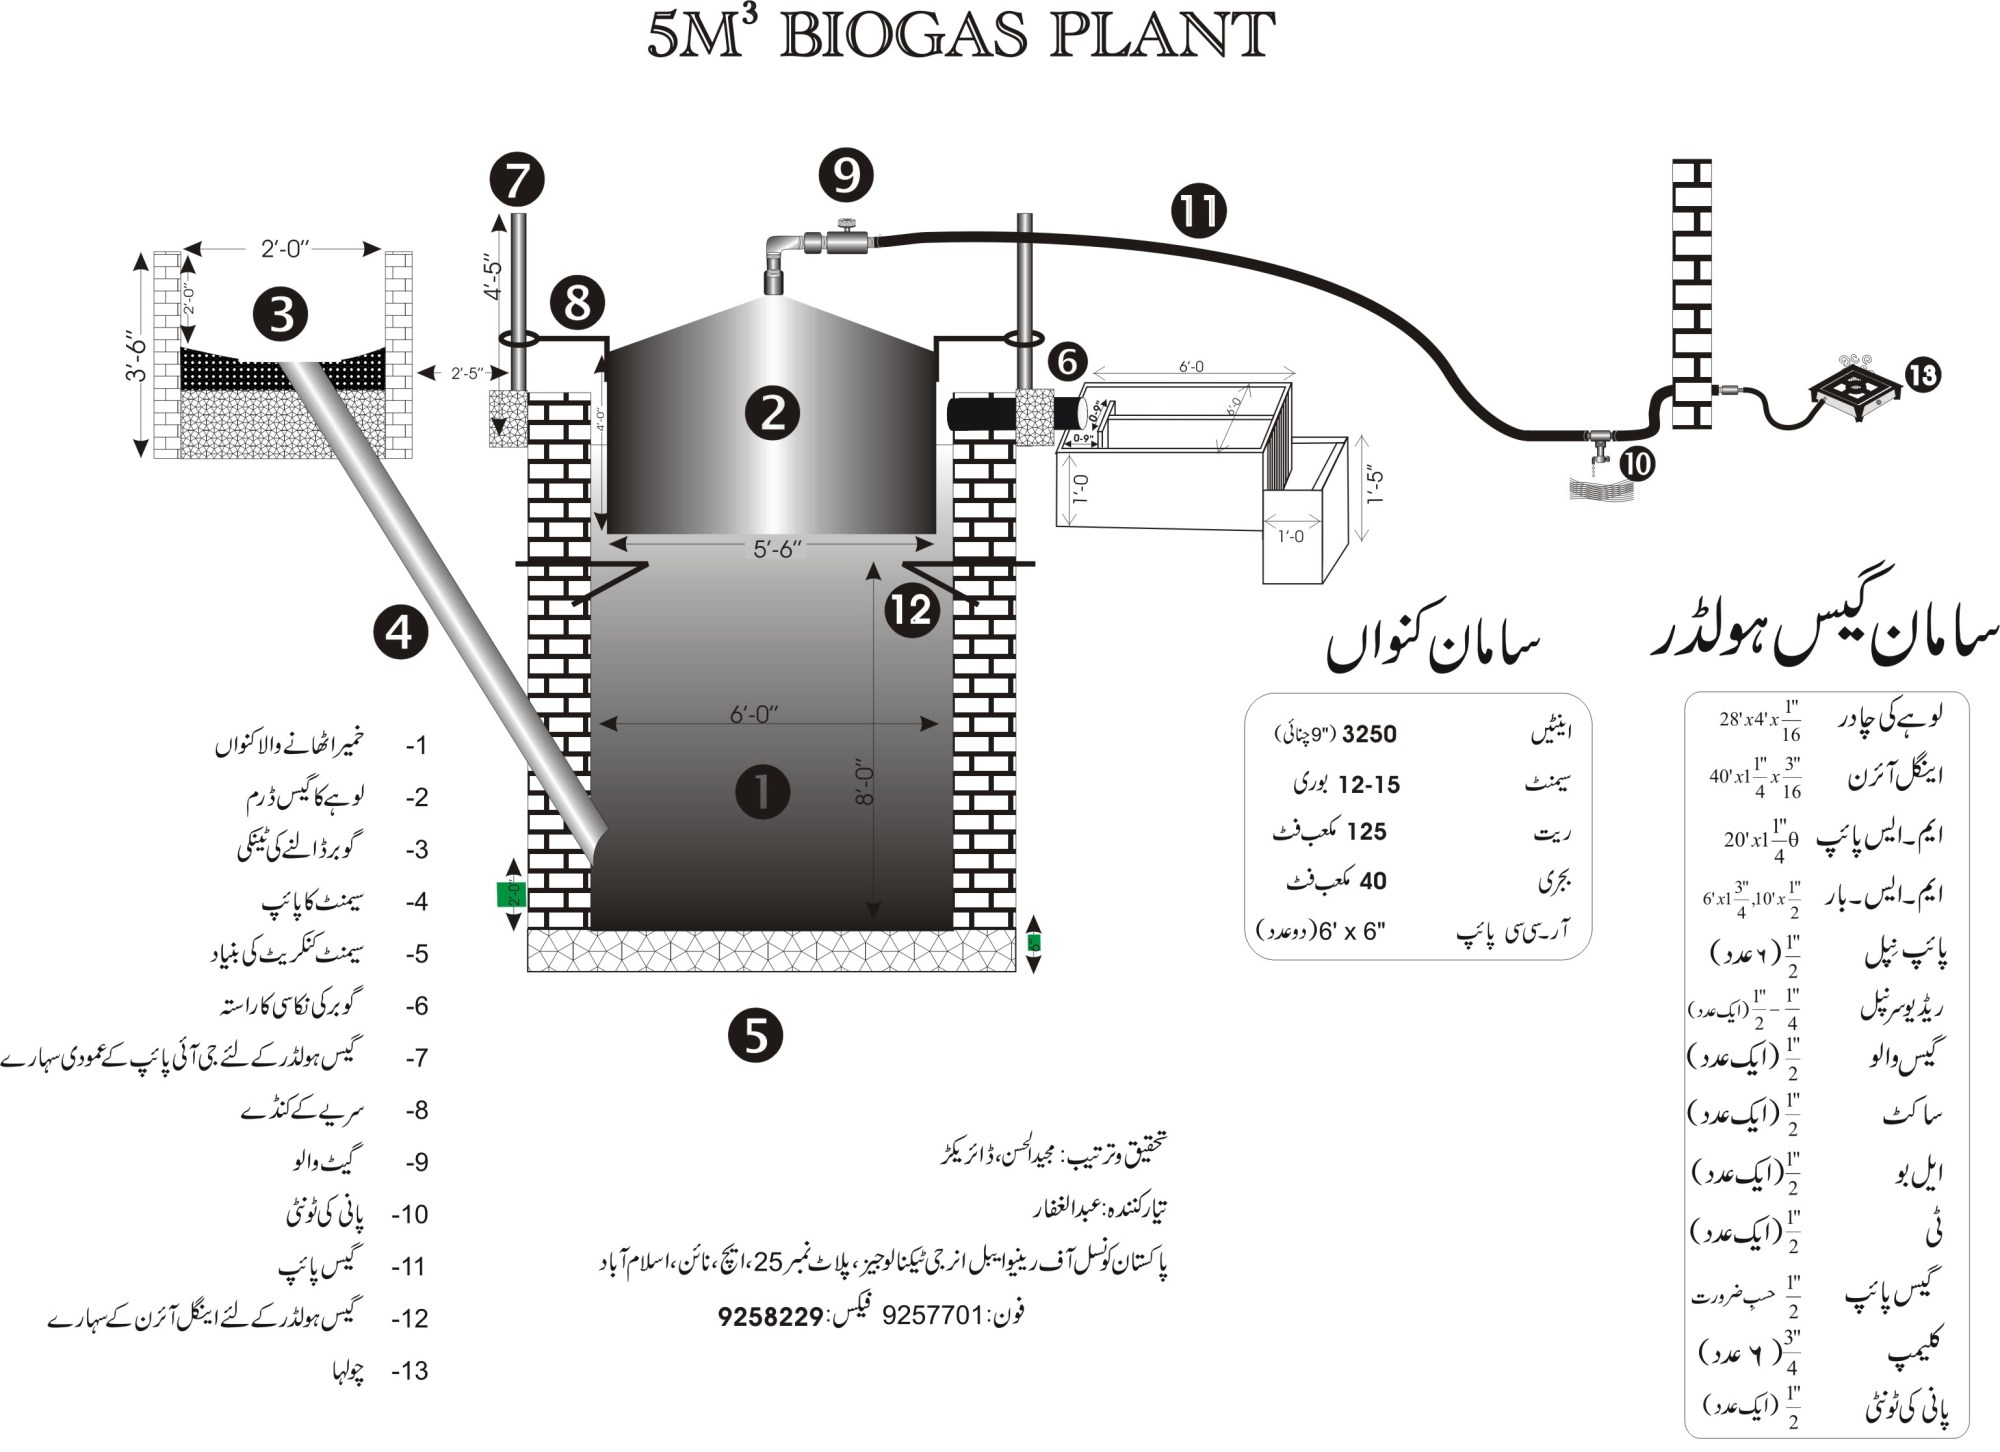 hight resolution of biogas plant who not tired to search never fail hydrogen plant diagram 2nd diagram of biogas plant